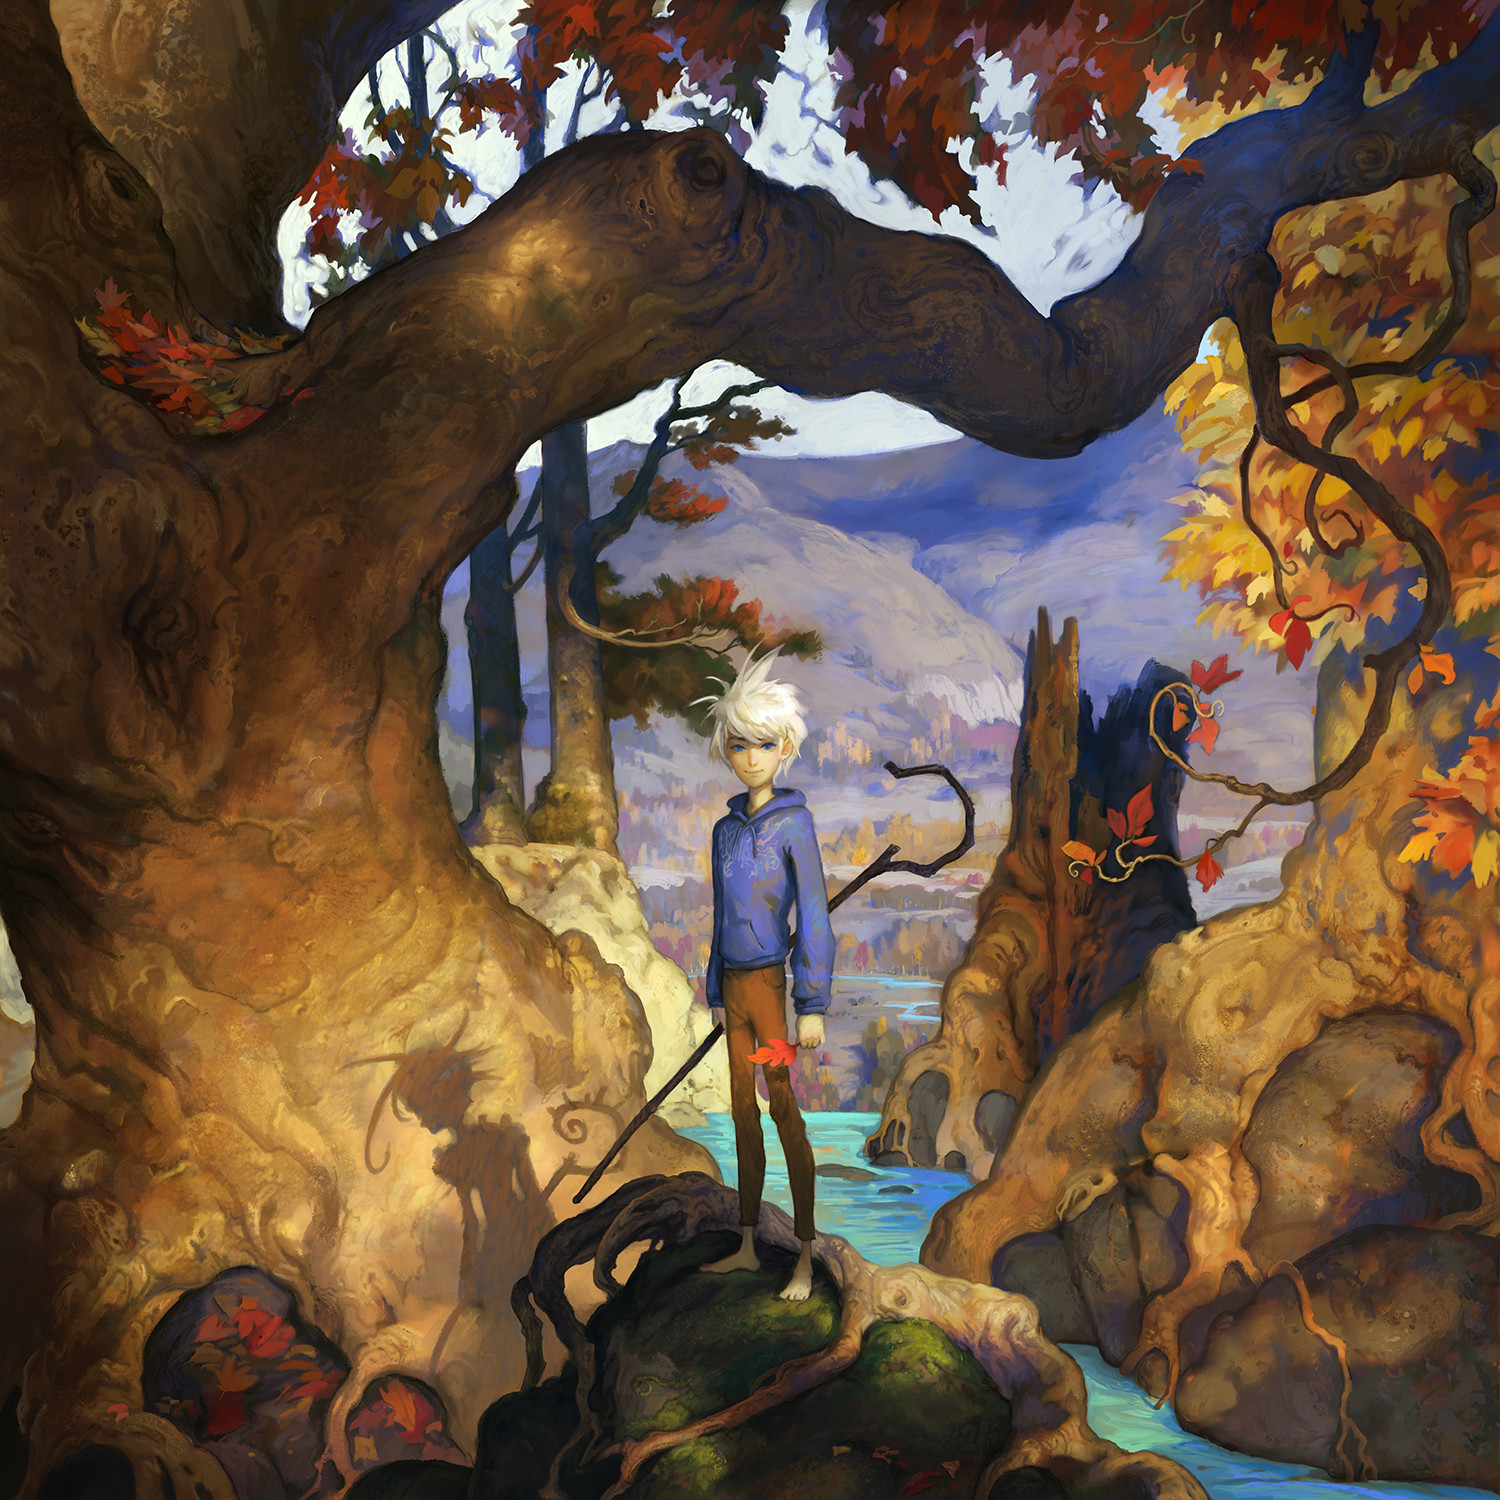 The boy, Jack Frost, bringing the change of seasons